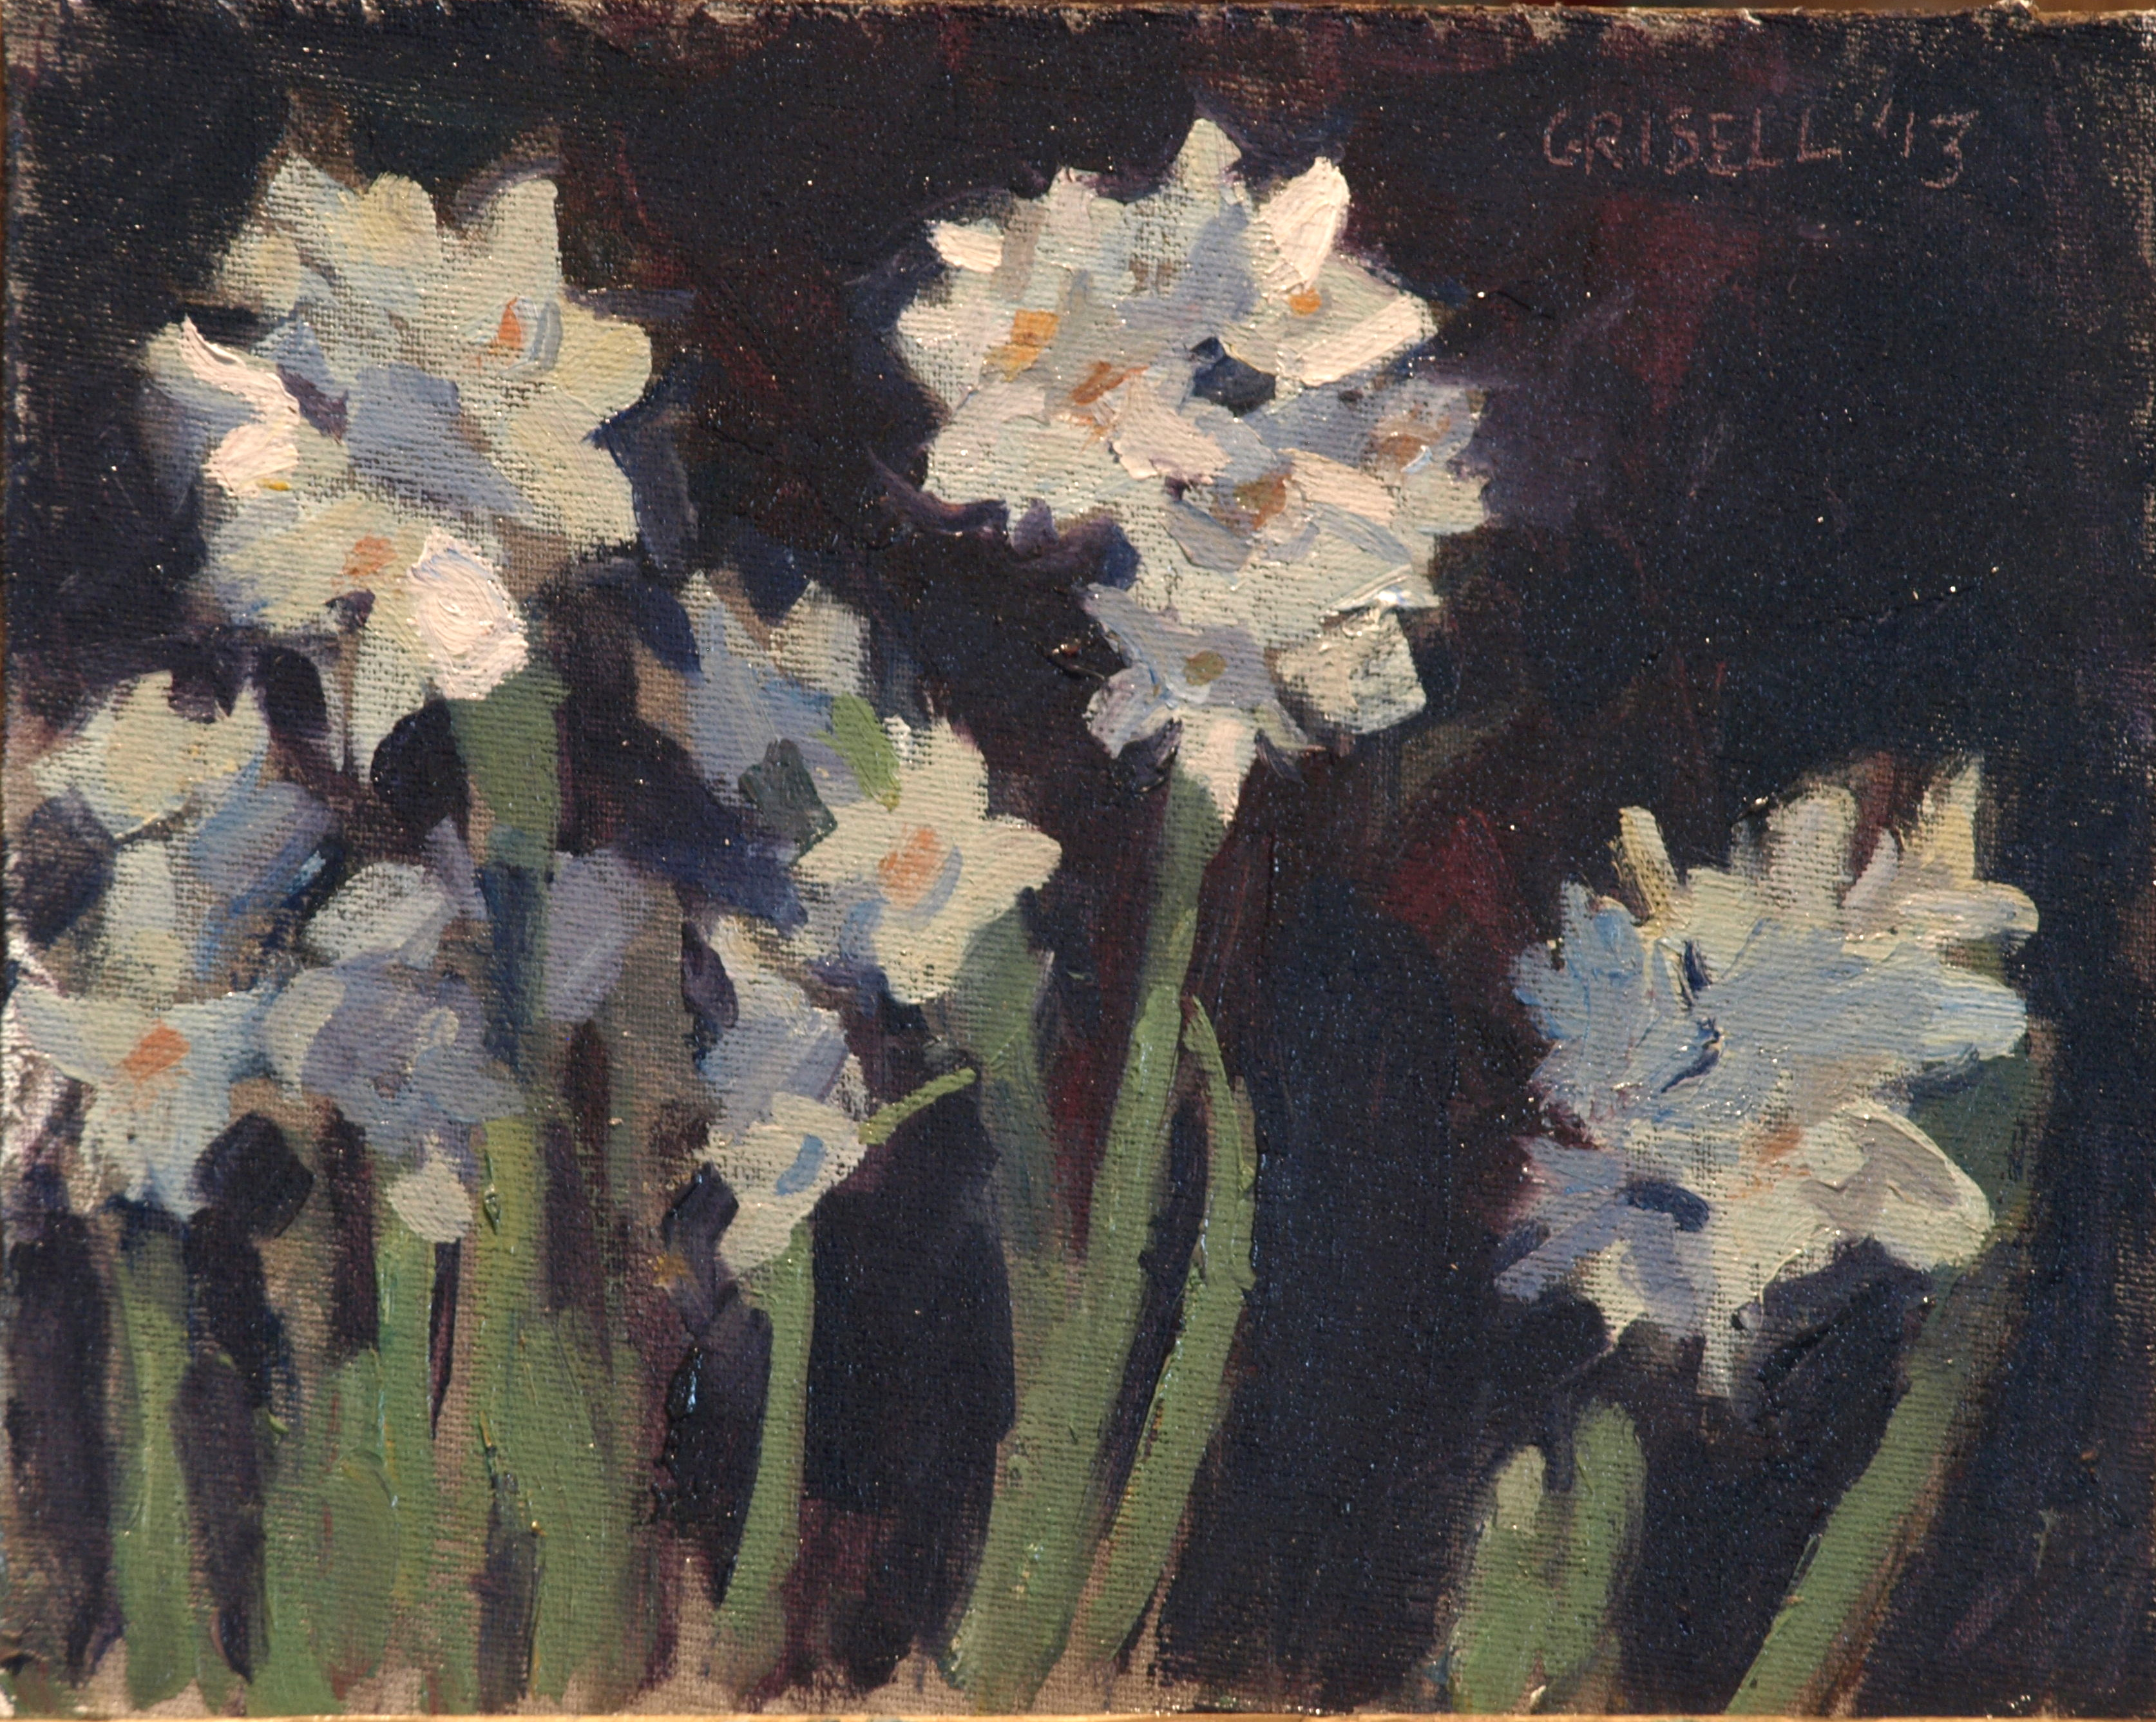 Paperwhites, Oil on Canvas on Panel, 8 x 10 Inches, by Susan Grisell, $150